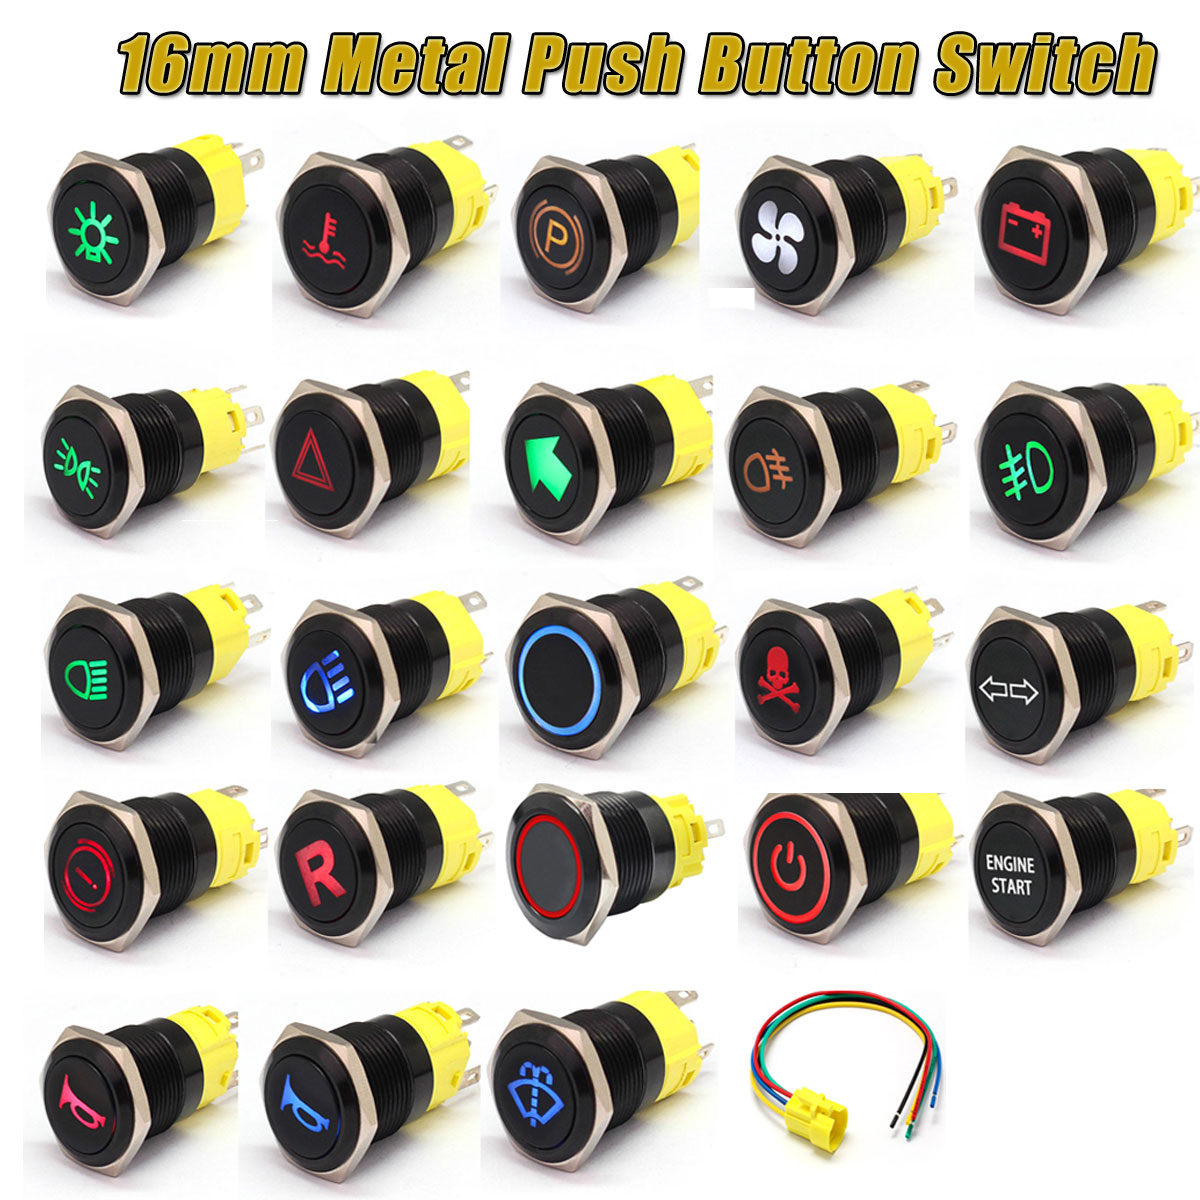 12/24V 16mm LED Indicator Warning Light Lamp Dash Panel Metal Push Button Switch Momentary Latching On Off For Car Yacht Ship